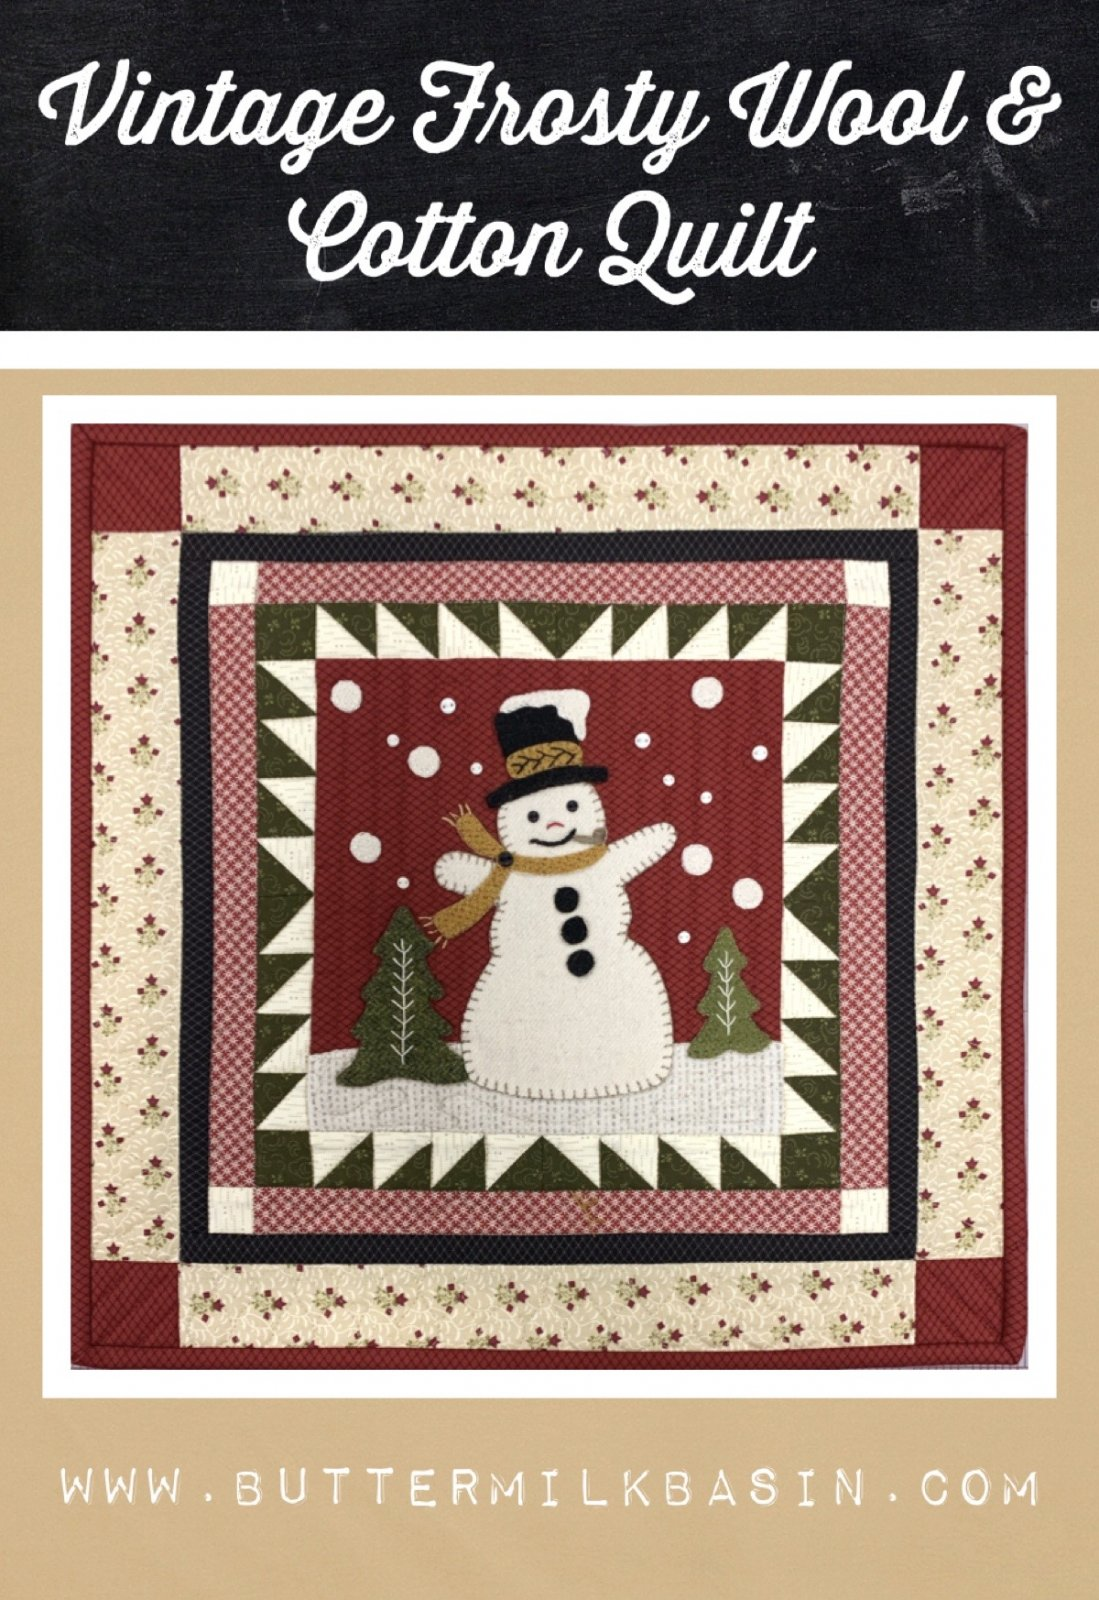 Vintage Frosty Wool & Cotton Quilt * Kit & Pattern